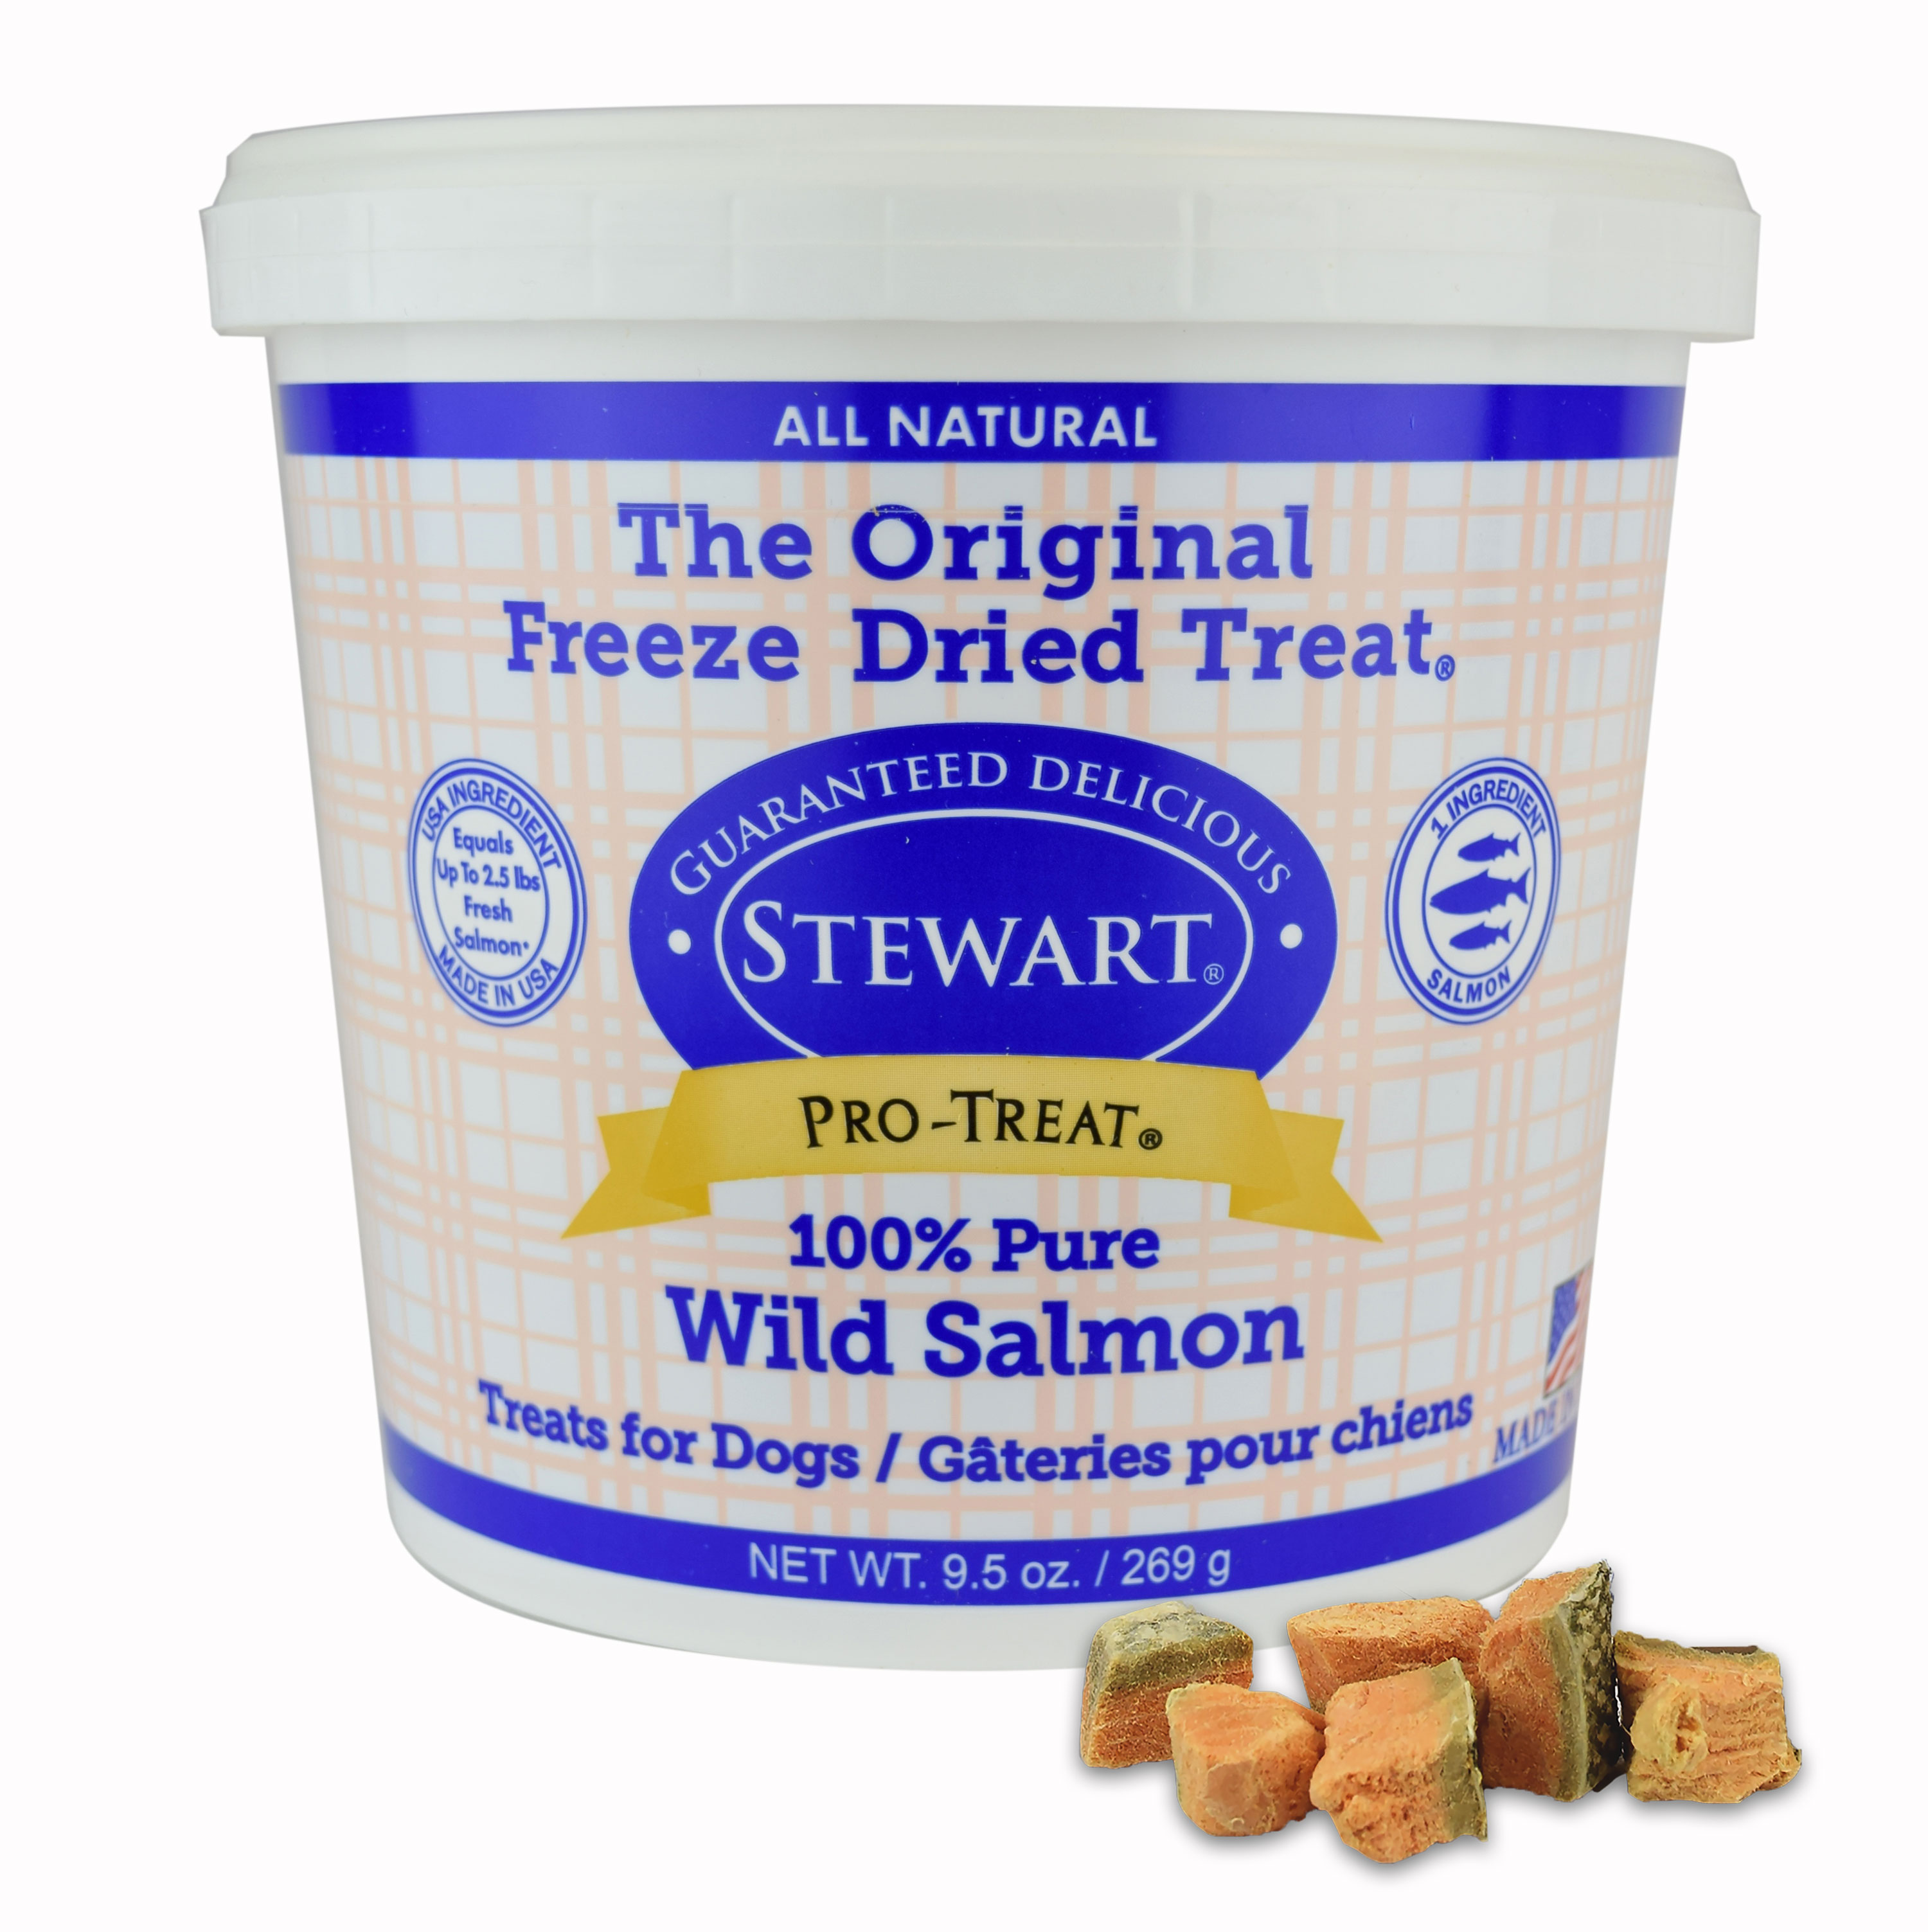 Stewart Freeze Dried Wild Salmon by Pro-Treat, 9.5 oz. Tub